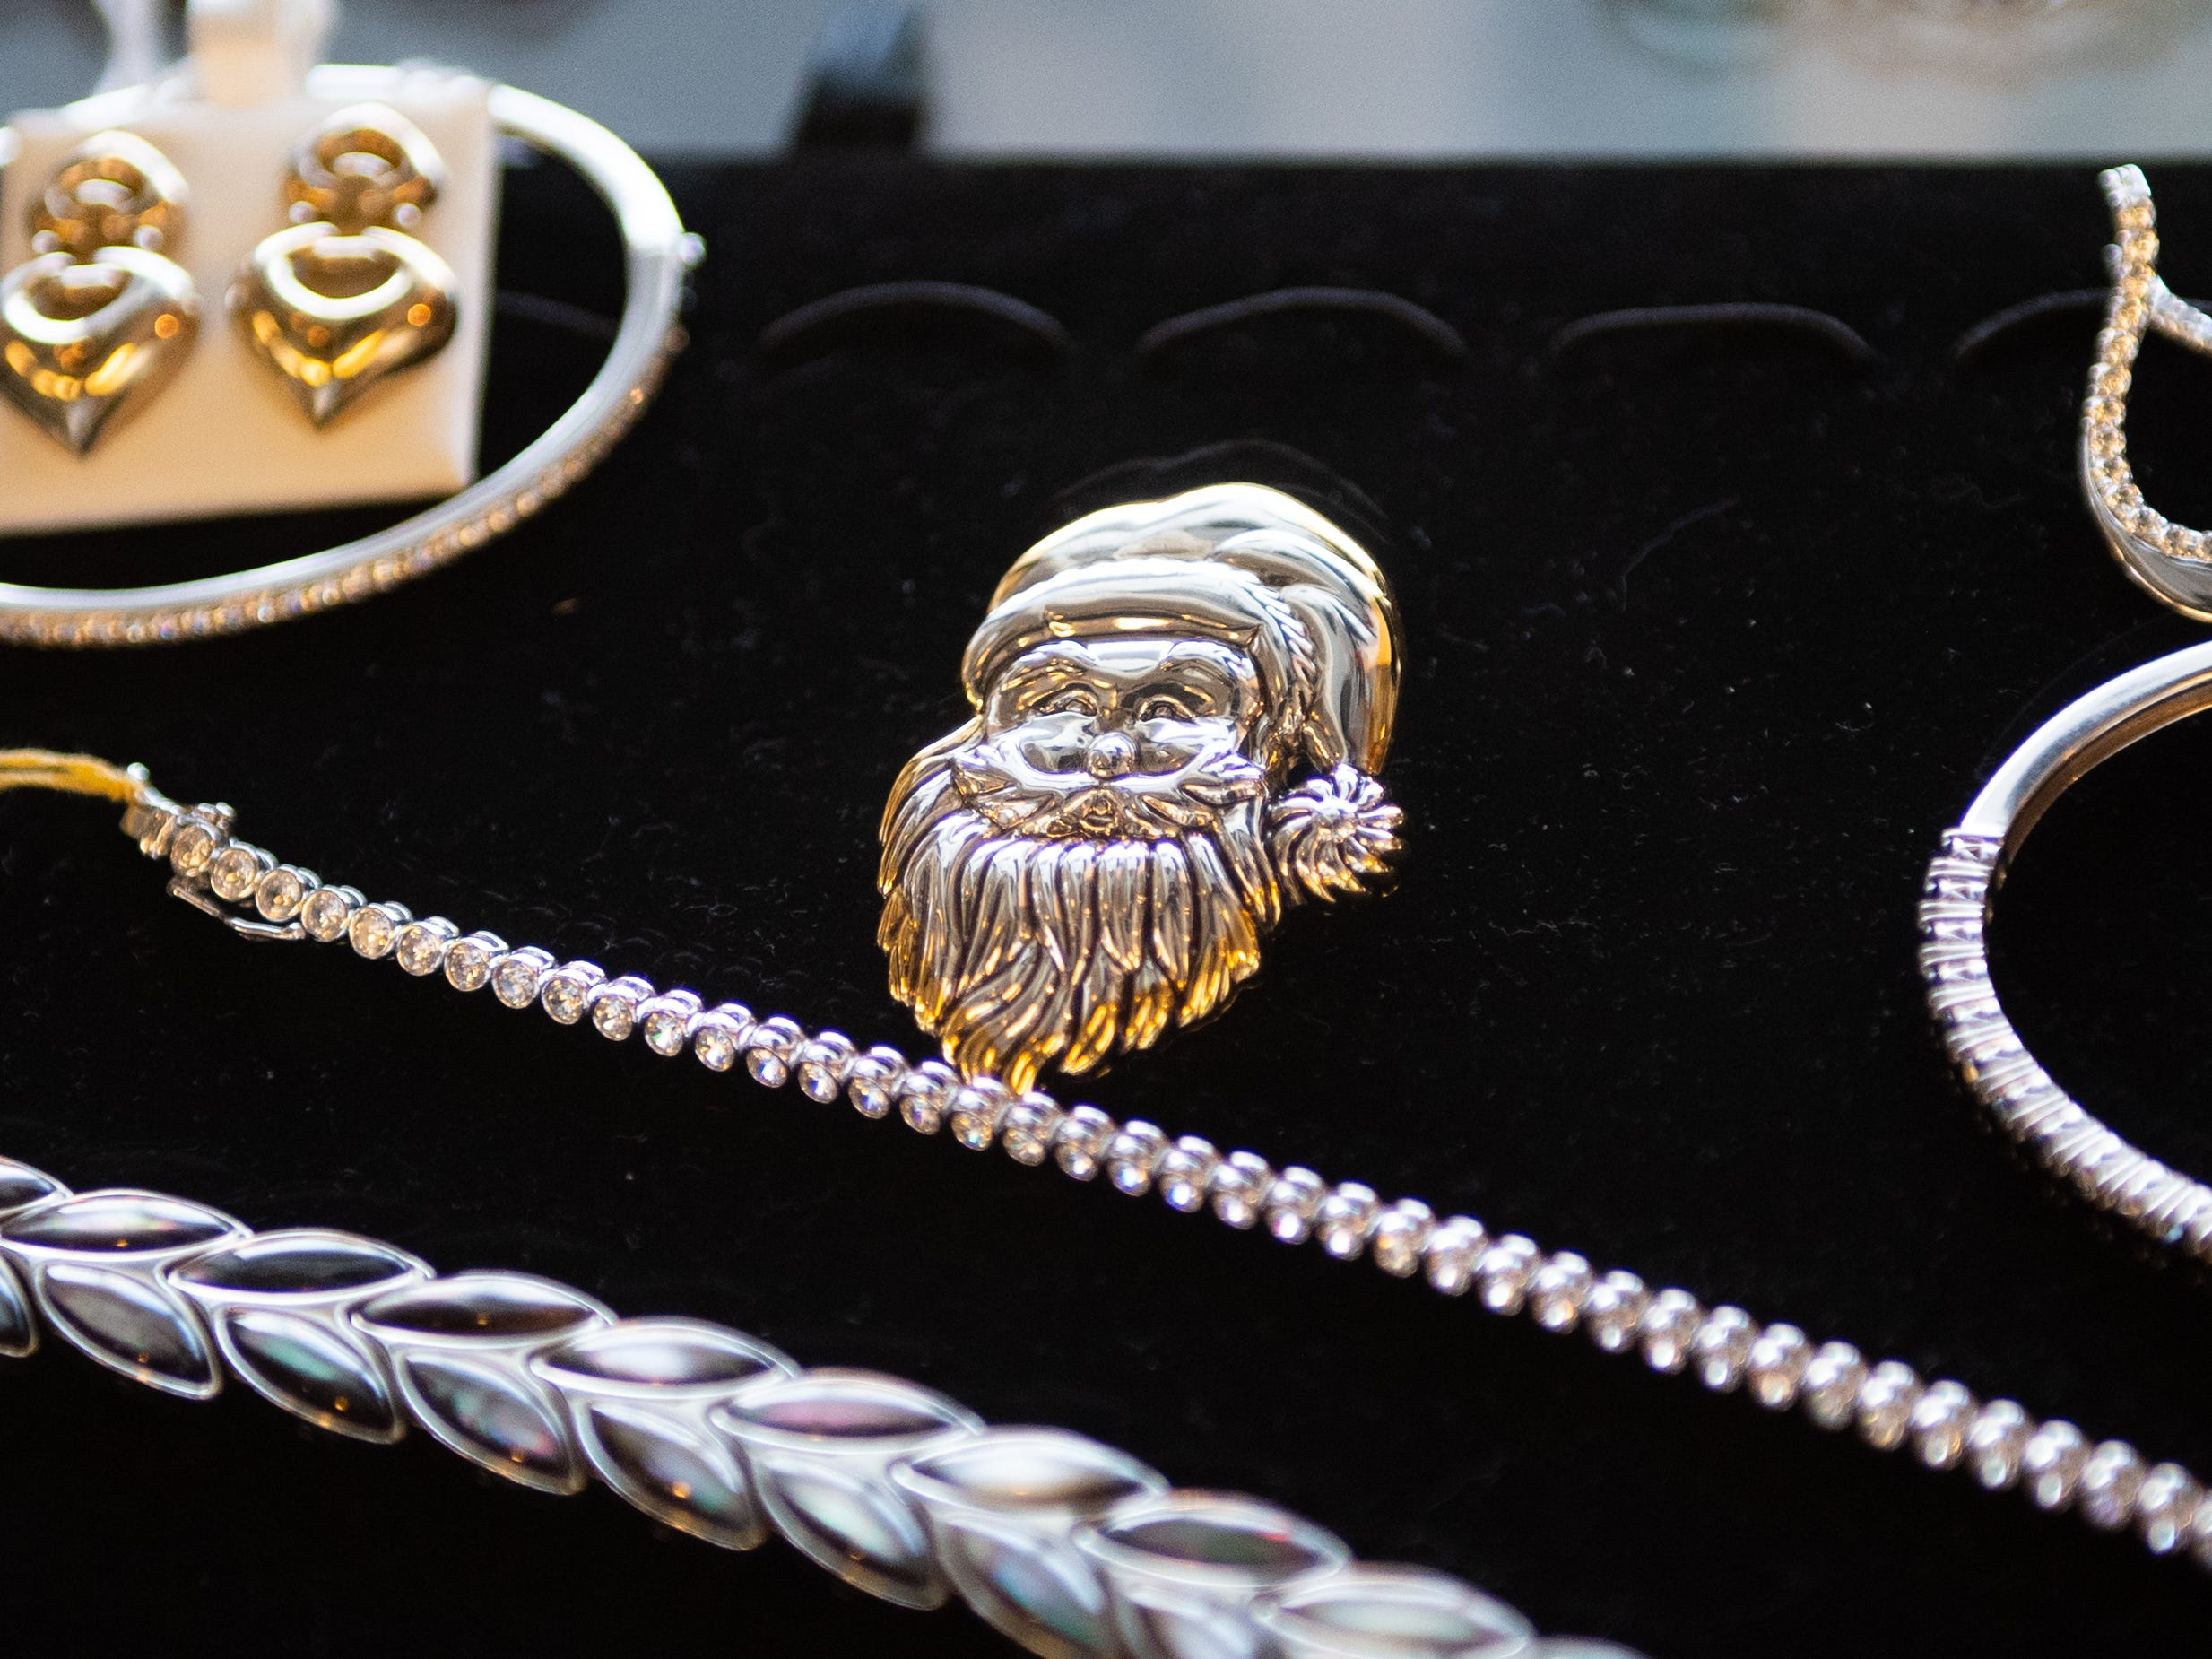 Holiday themed jewelry sits on display at Botterbusch Jewelry, January 30, 2019.